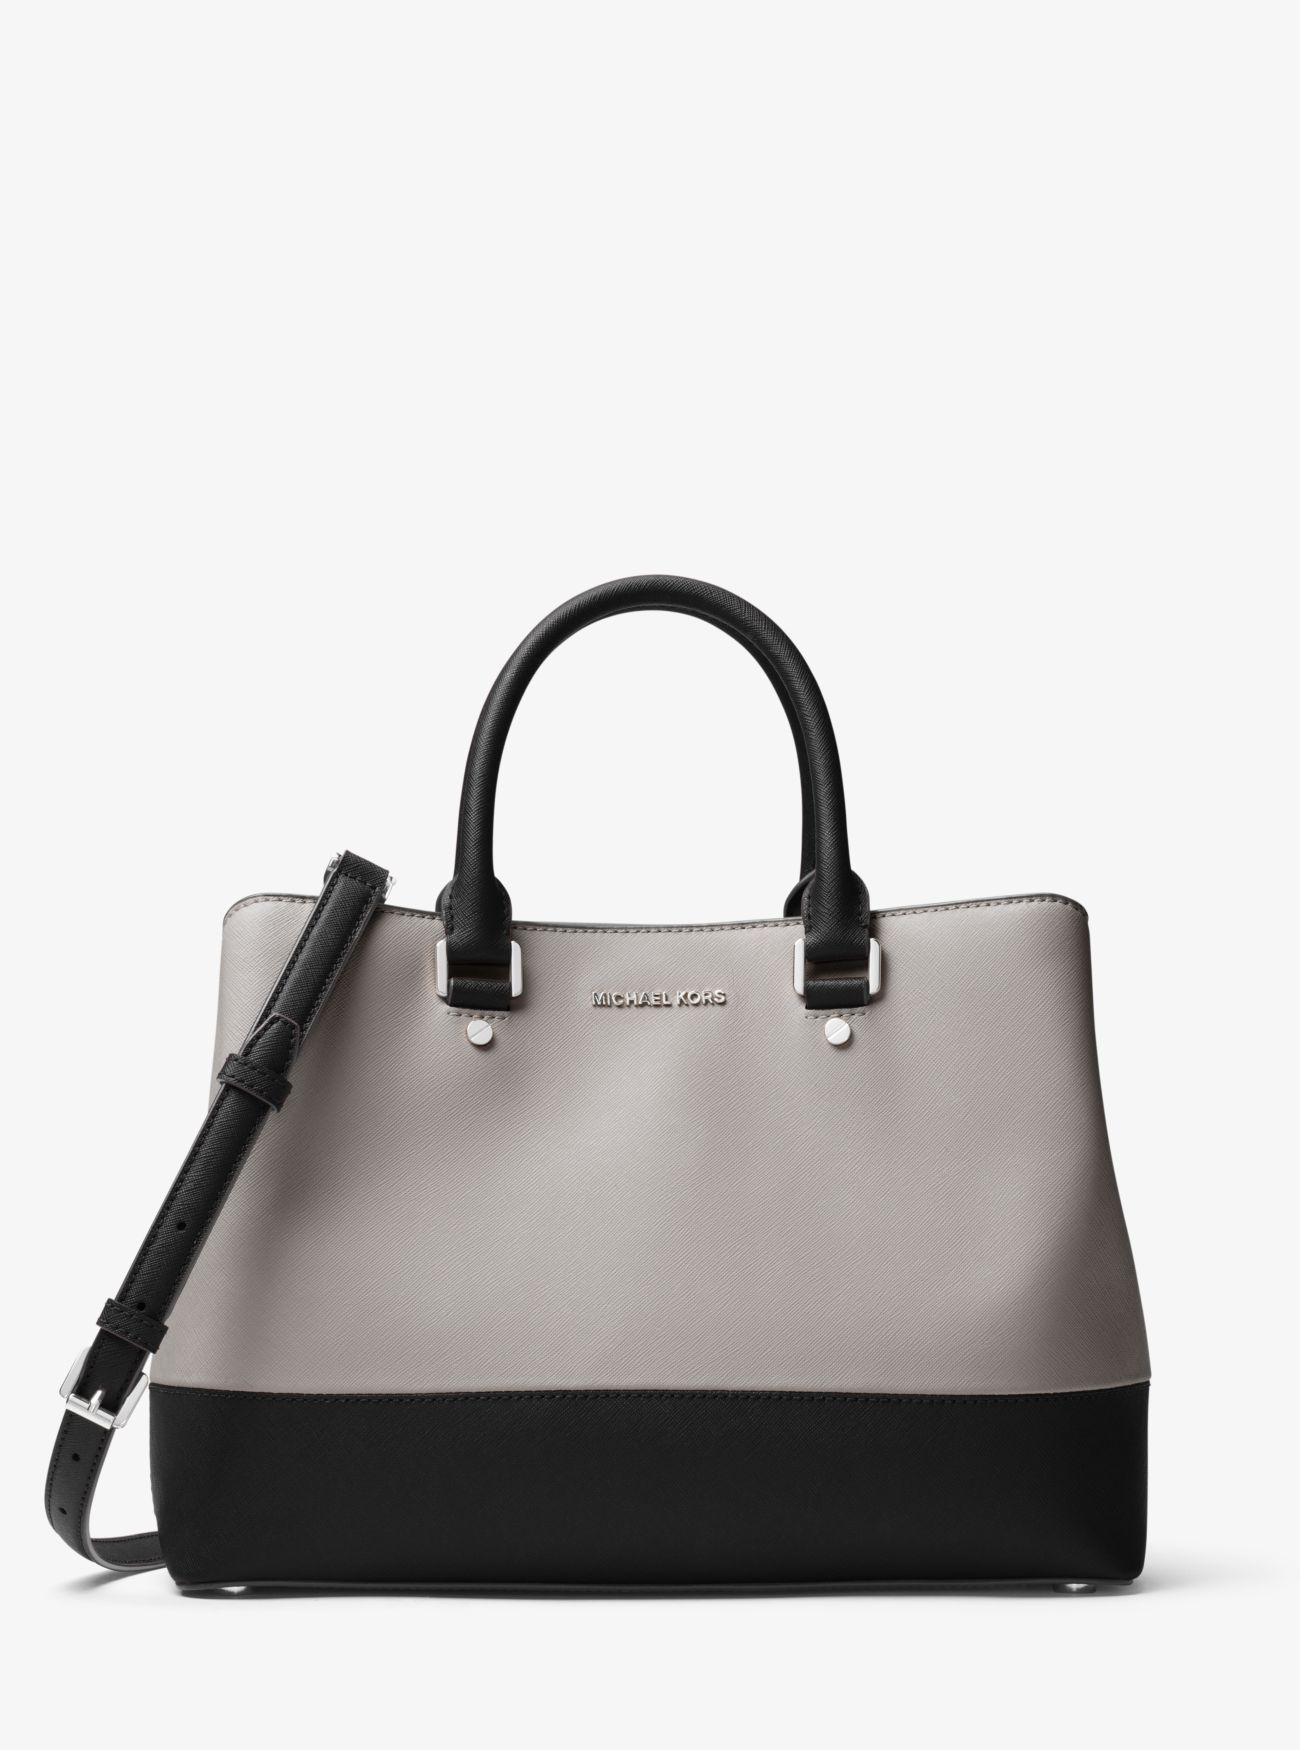 430bd31486b047 Savannah Color-Block Saffiano Leather Satchel. Savannah Color-Block  Saffiano Leather Satchel Michael Kors Savannah, Pearl Grey ...